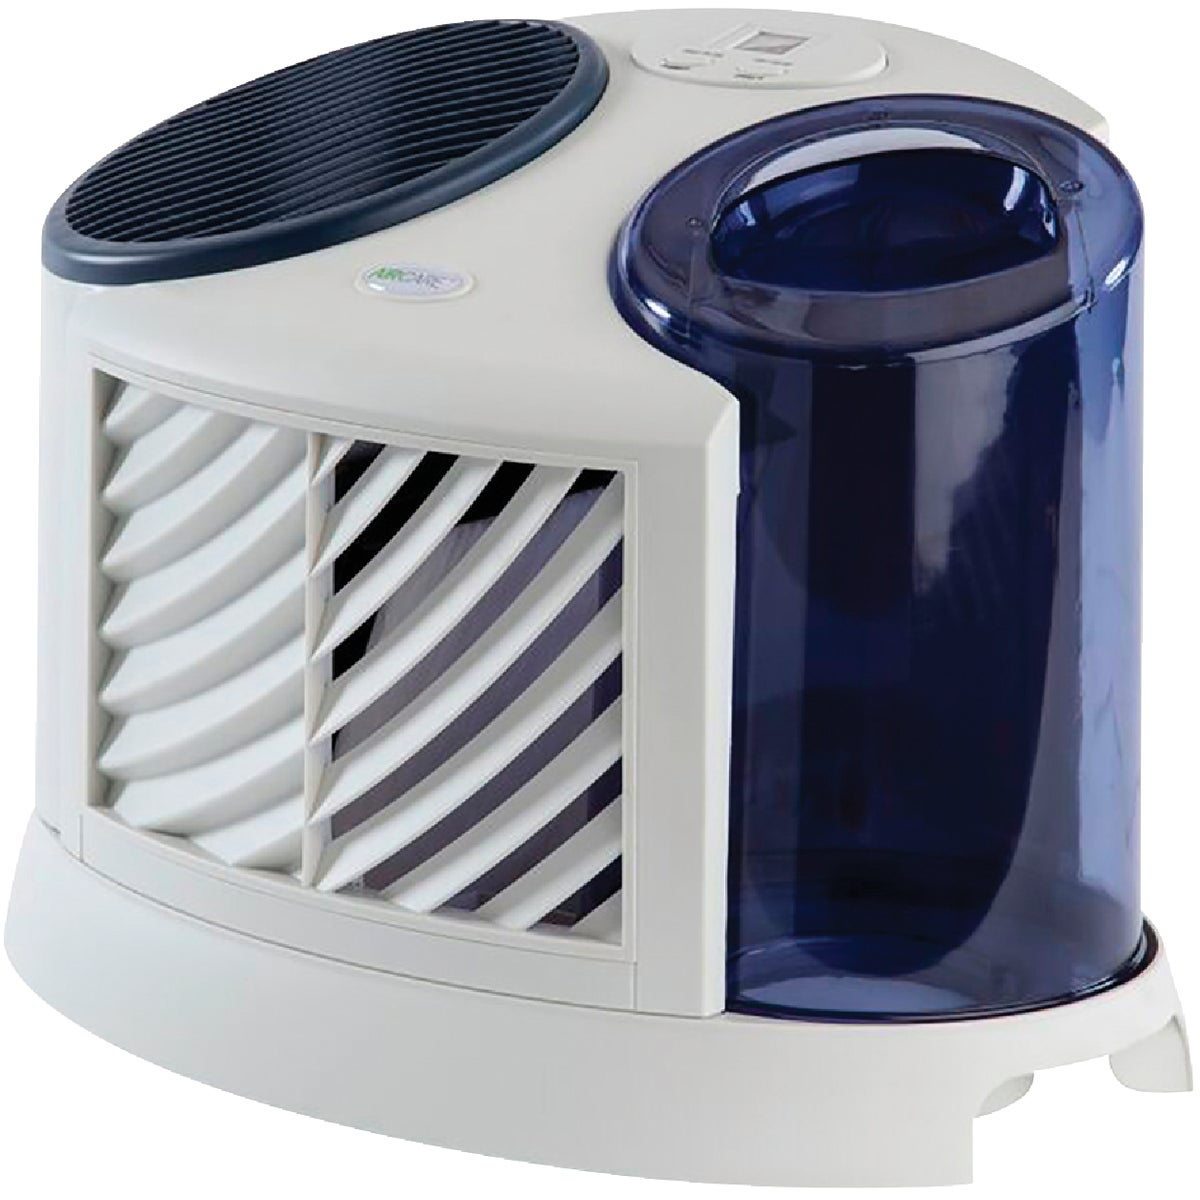 3GPD TBLE TOP HUMIDIFIER - 7D6 100 by Essick Air Products